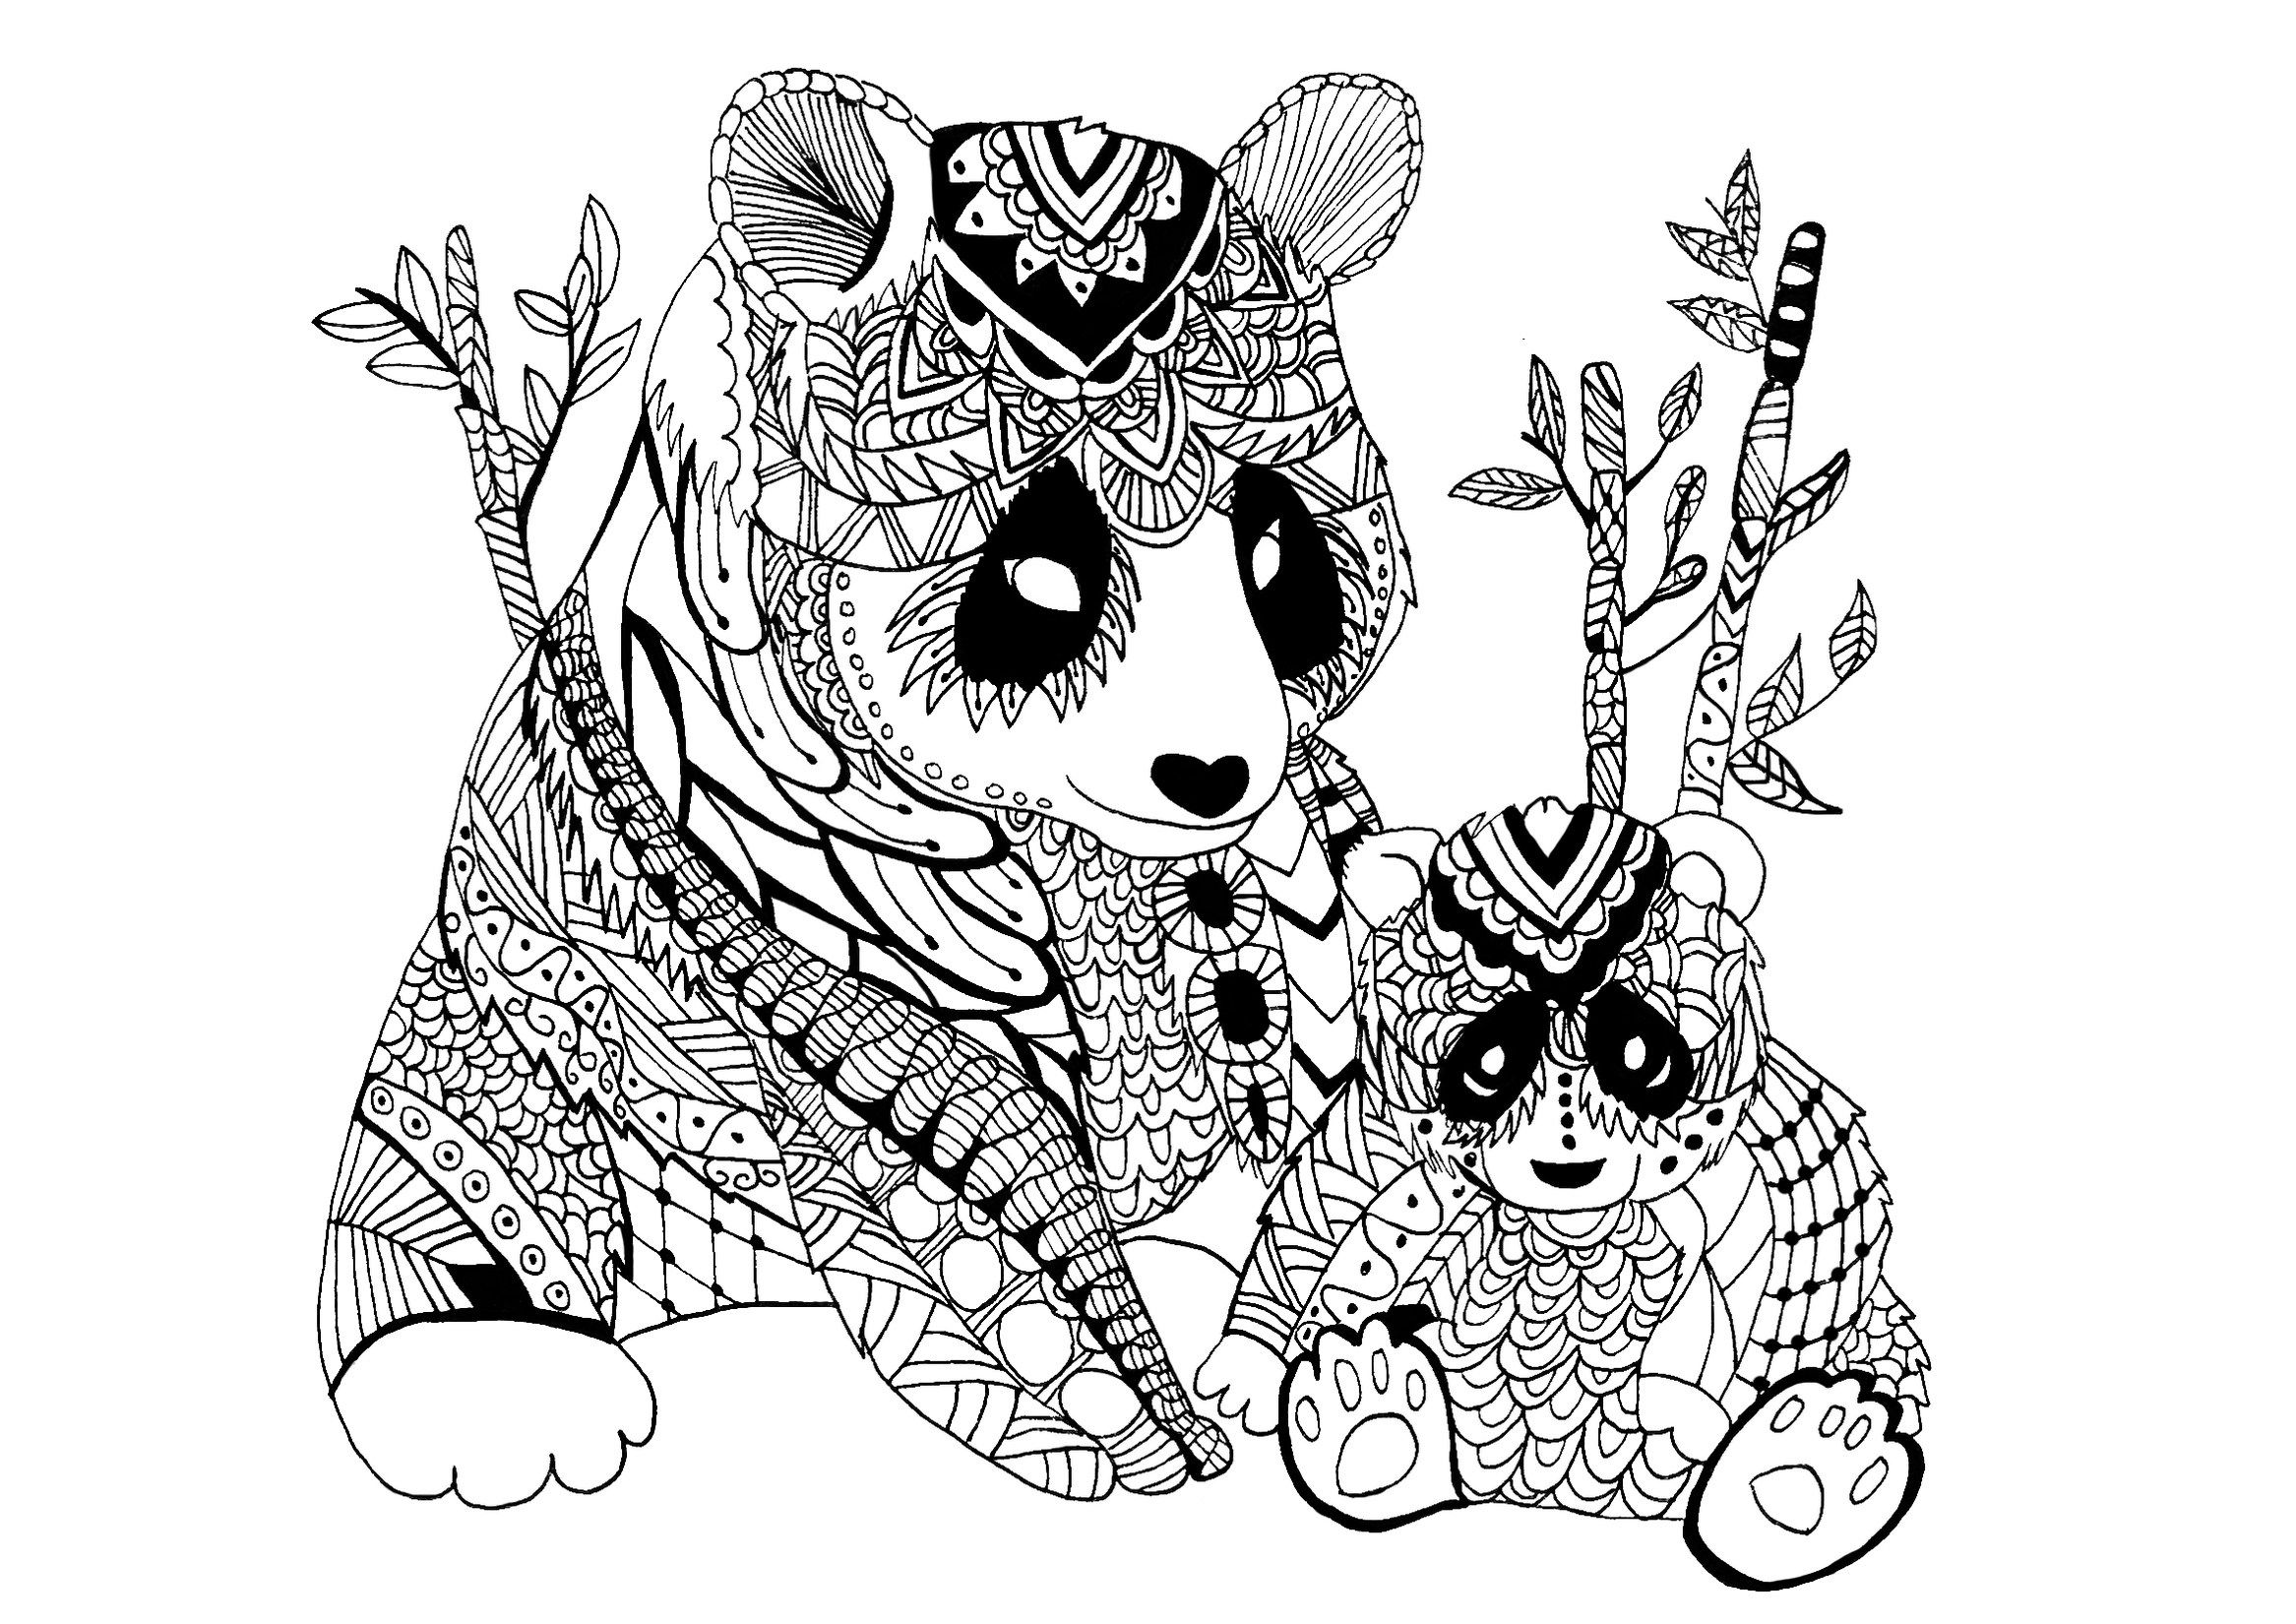 panda-and-baby-zentangle-coloring-picture | Art--Coloring Pages ...